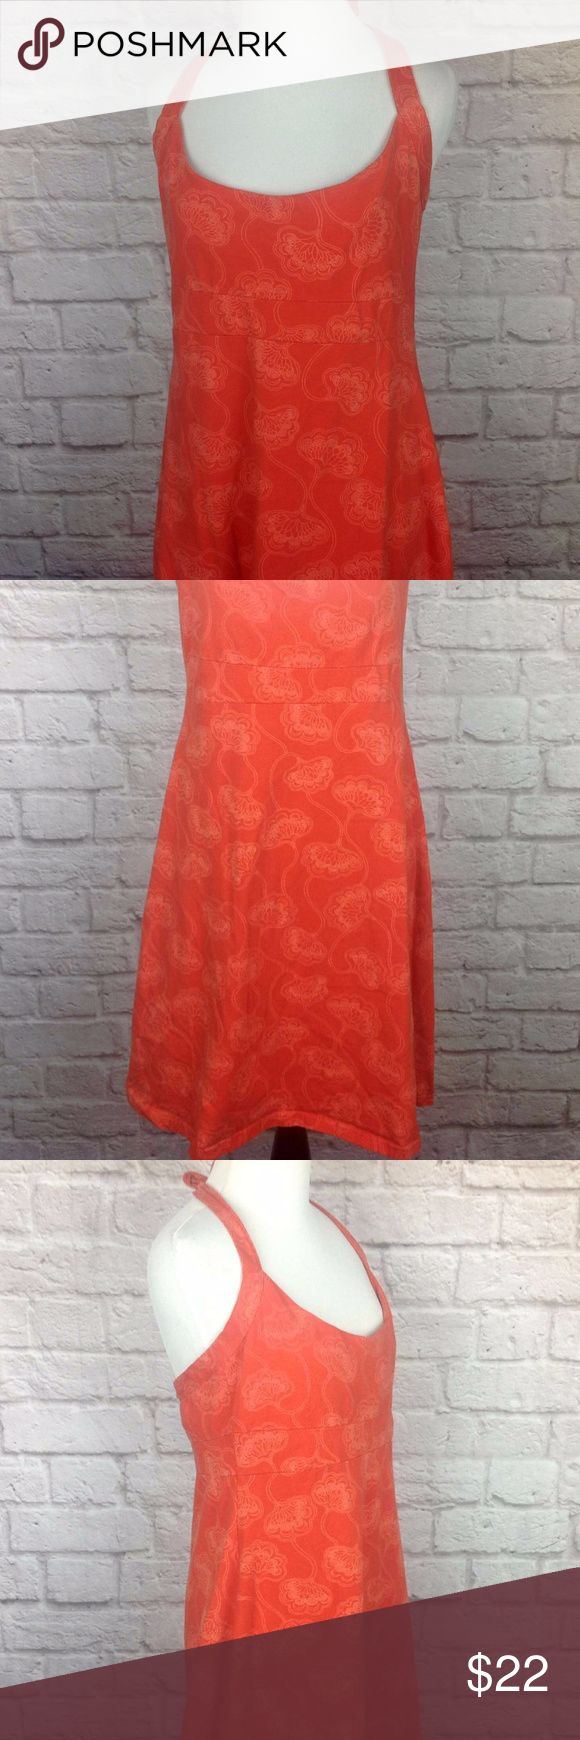 Patagonia Dress Large Athletic Travel Sport Bra Great Condition; Patagonia Dress Large Athletic Travel Build in Sport Bra Organic Cotton Floral Orange; Stretchy 95/5 Organic Cotton/Spandex; Tie Back Neck; Length measured from armpit to bottom hem is 28.5 inches; 16.5 inch across bust Patagonia Dresses Midi